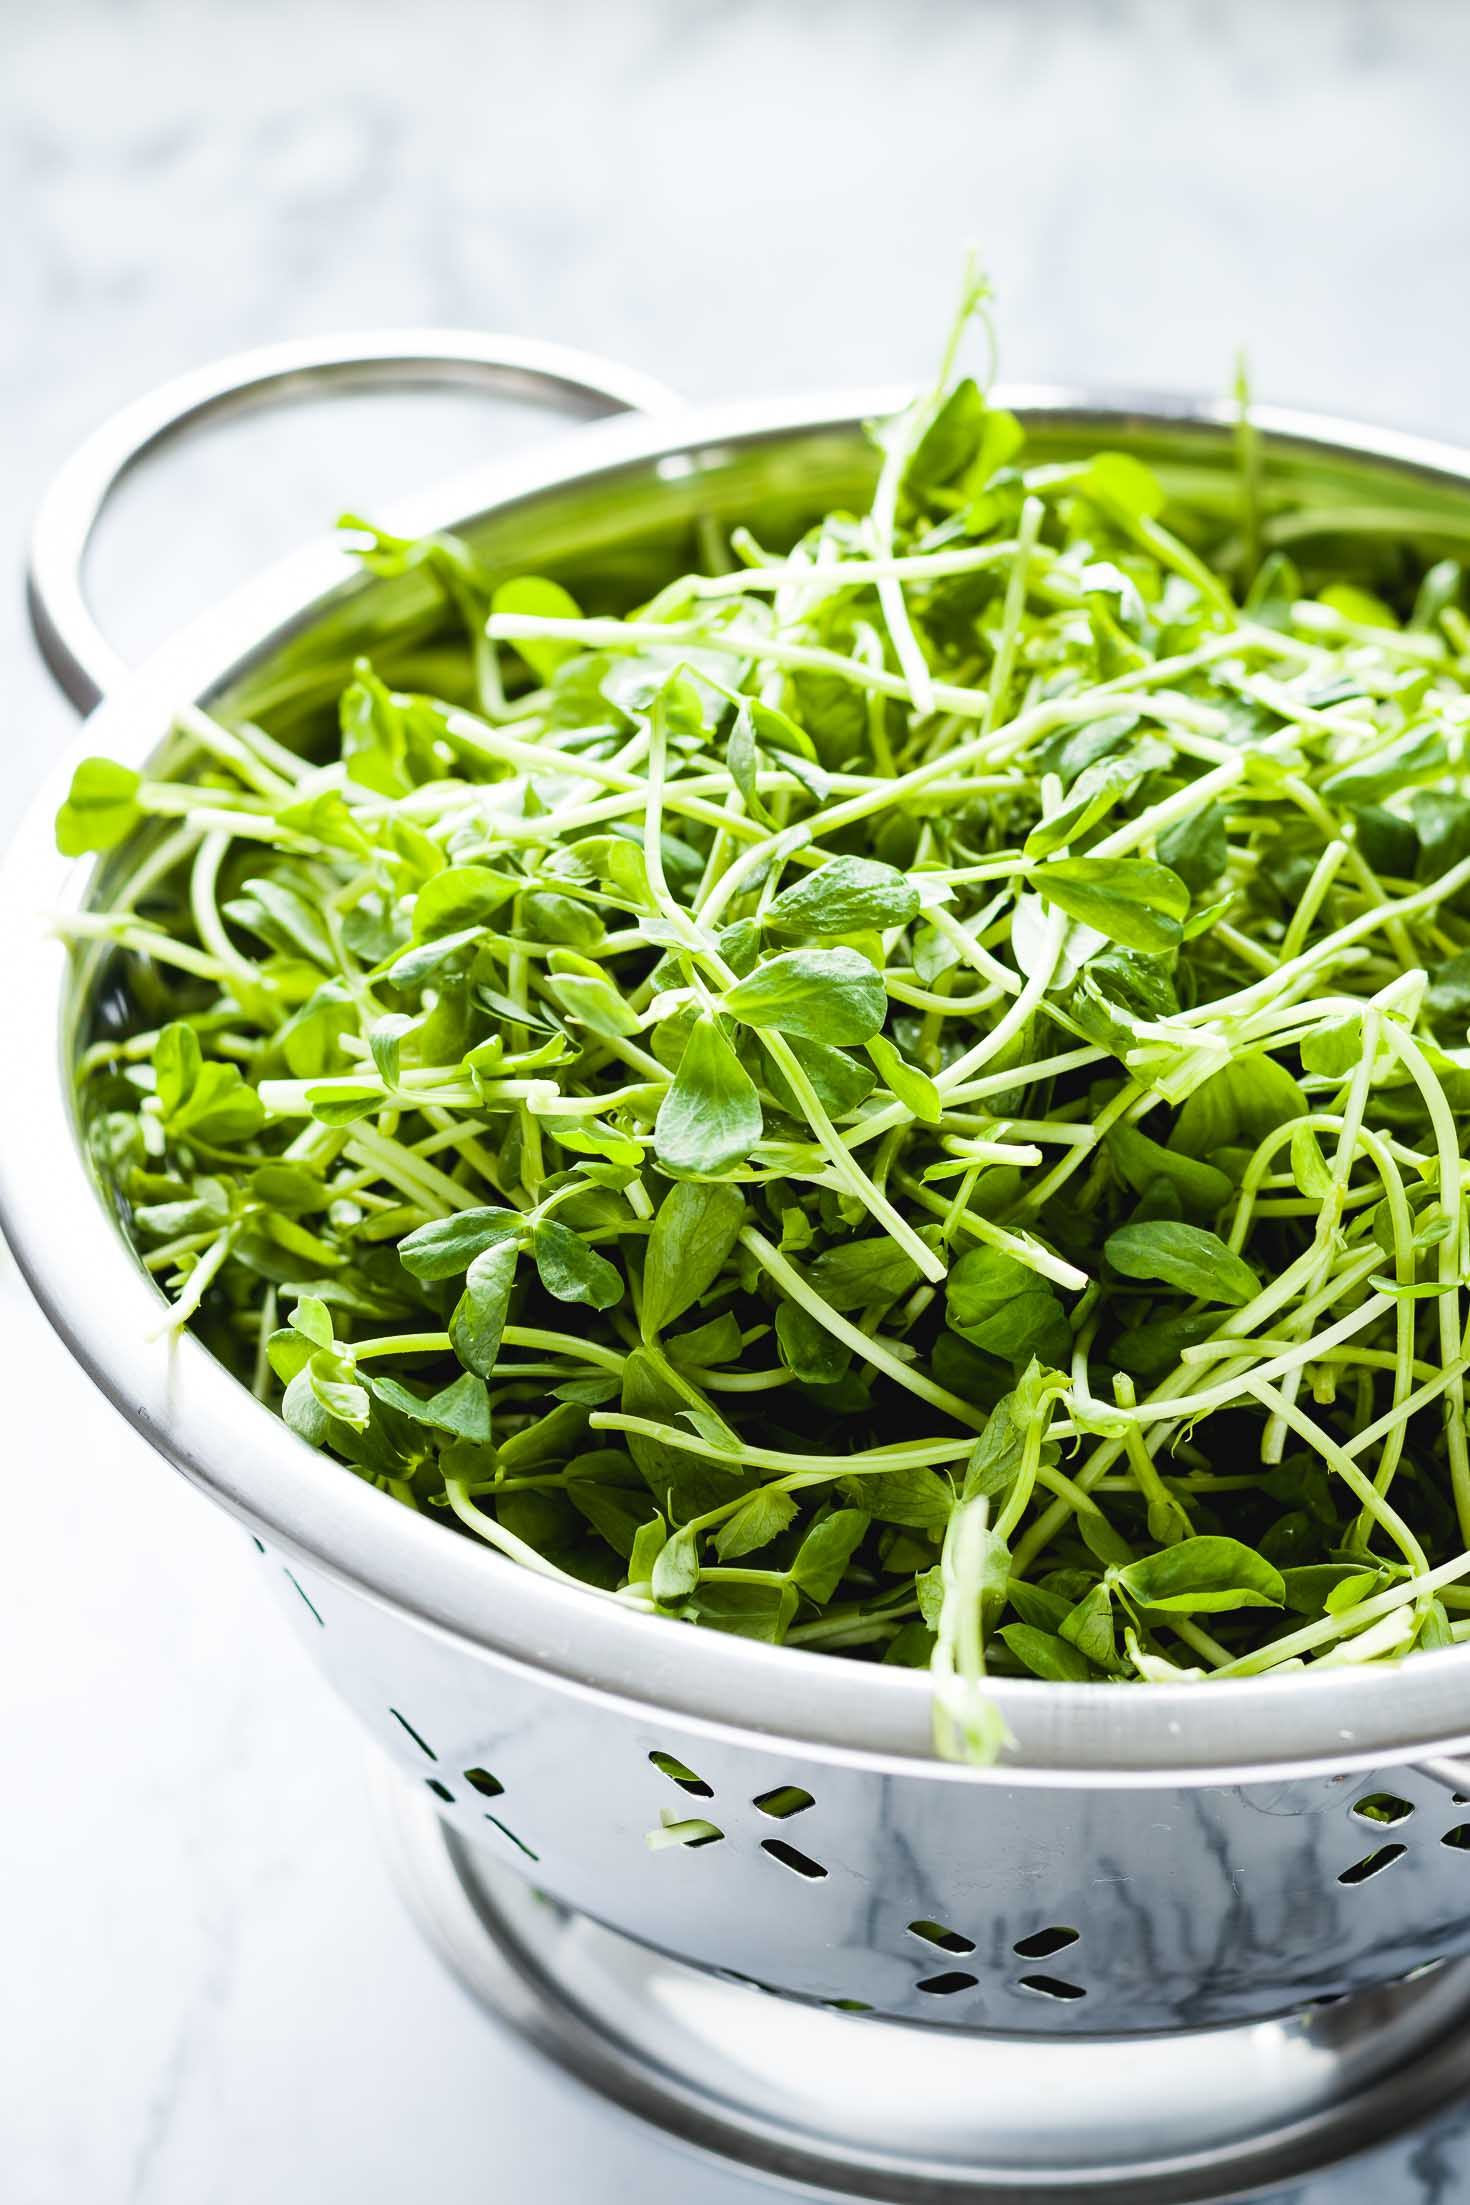 Pea Shoots Mango Rainbow Salad-backlited closeup view of green pea shoots in a metal colander.